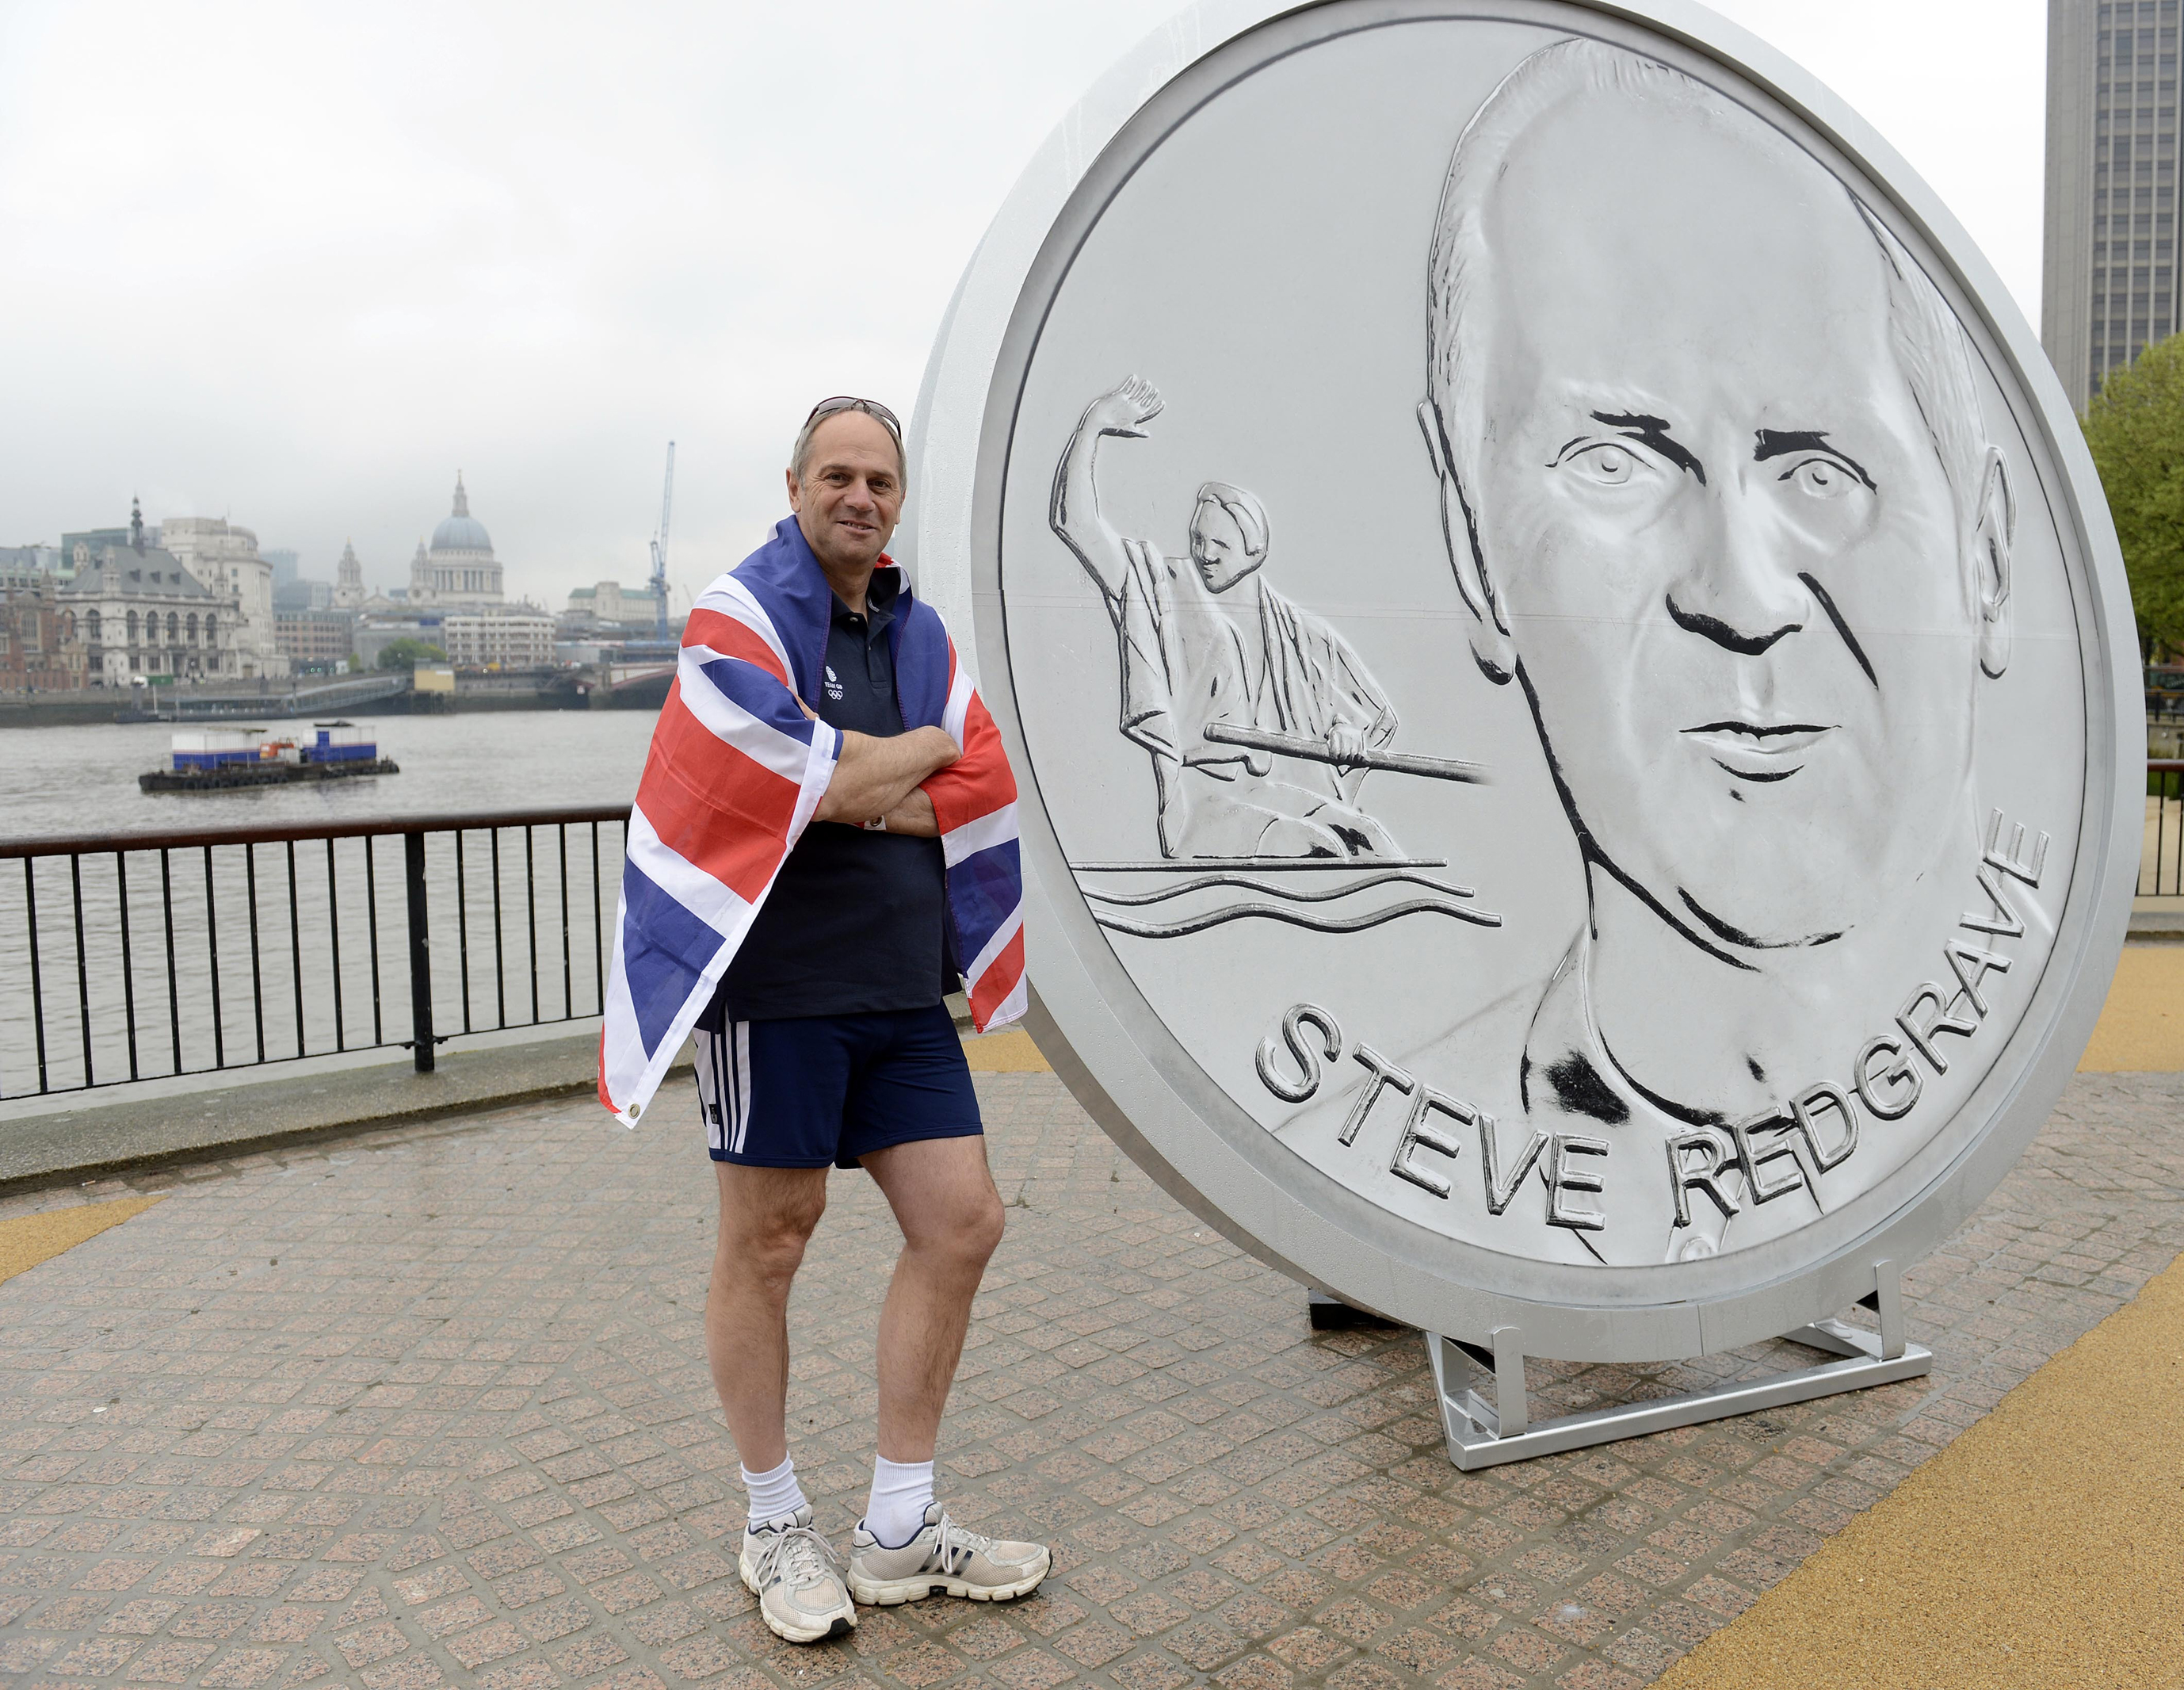 Sir Steve Redgrave stands in front of a giant medallion, featuring his face and a Olympic celebratory pose, on the Southbank, London, during the launch of Our Greatest Team Legends Collection in 2012 (Rebecca Naden/PA)